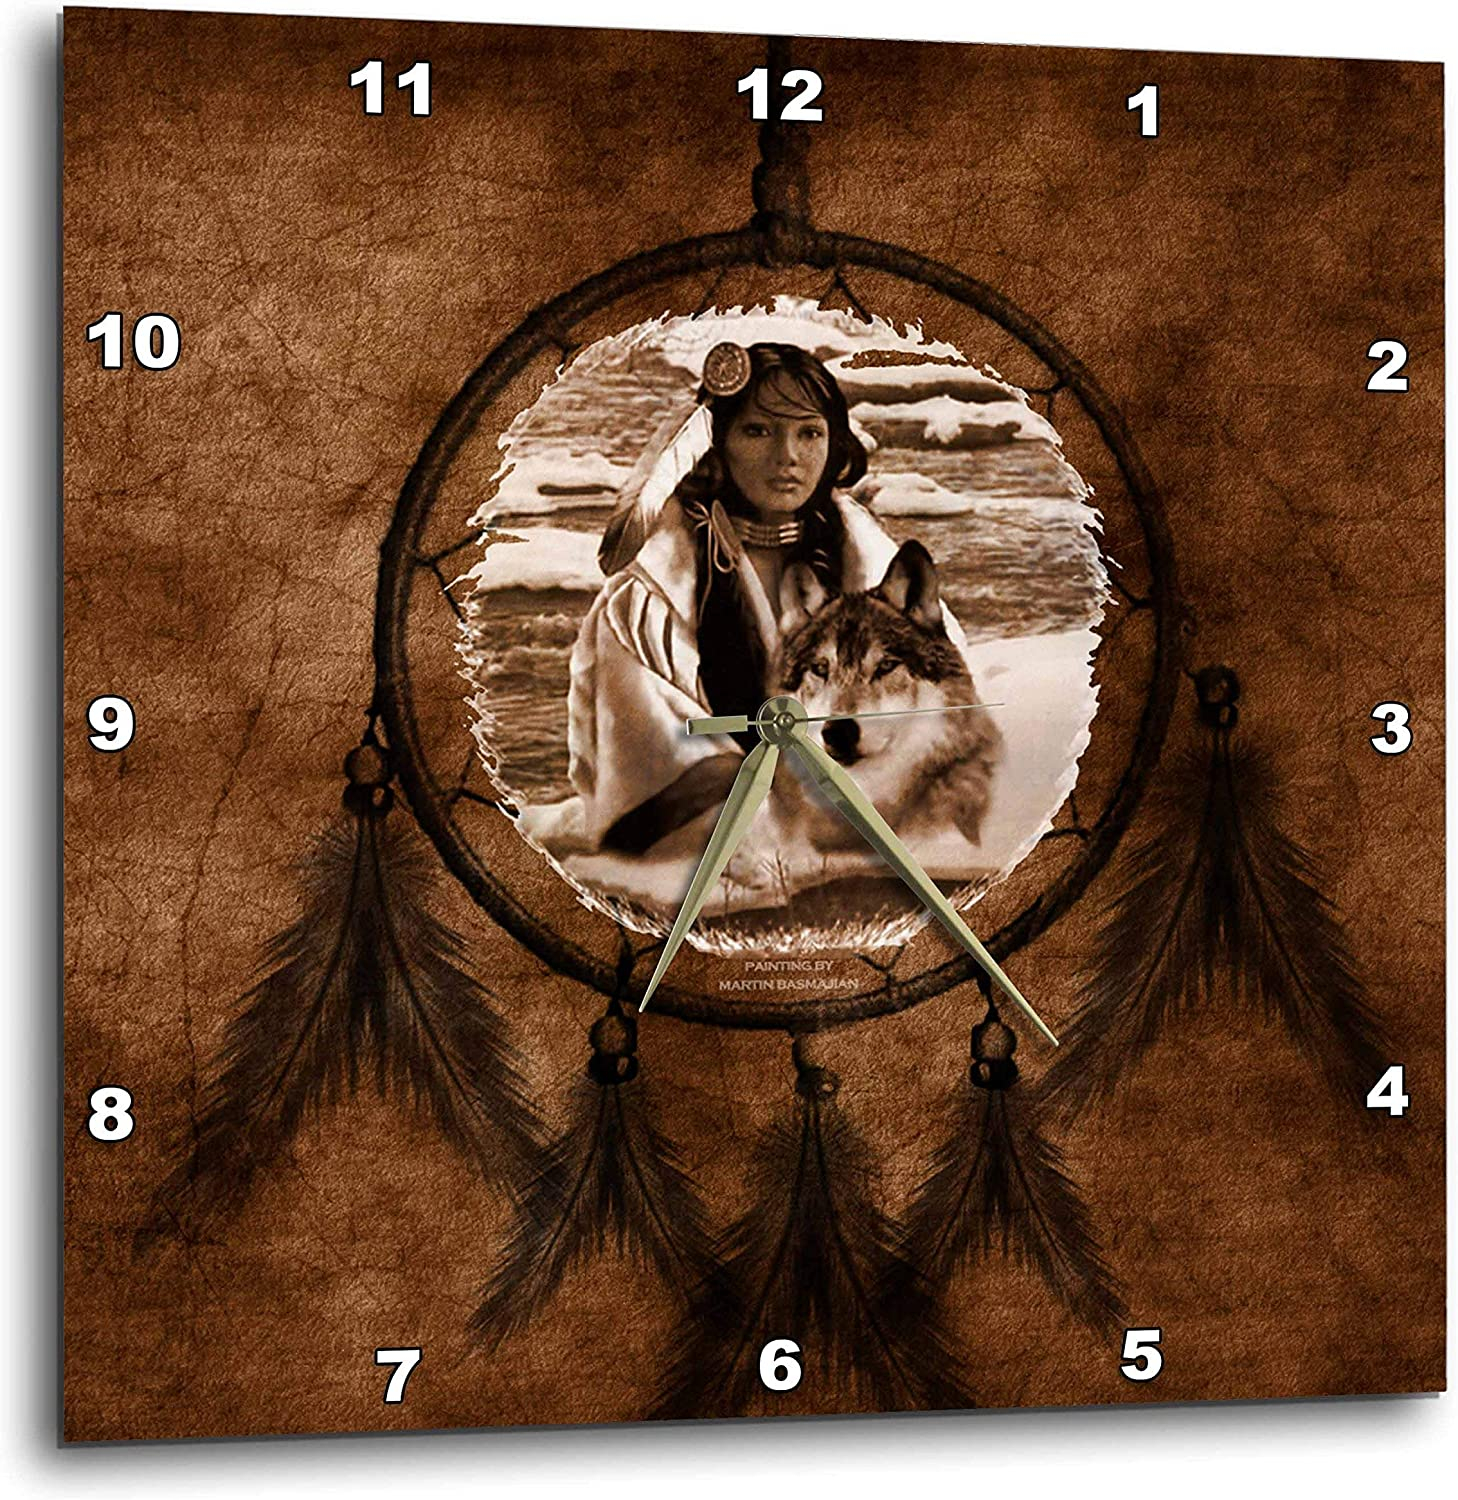 3dRose DPP_52256_3 Brown Native American Wolf Based on a Painting by Martin Basmajian Wall Clock, 15 by 15-Inch